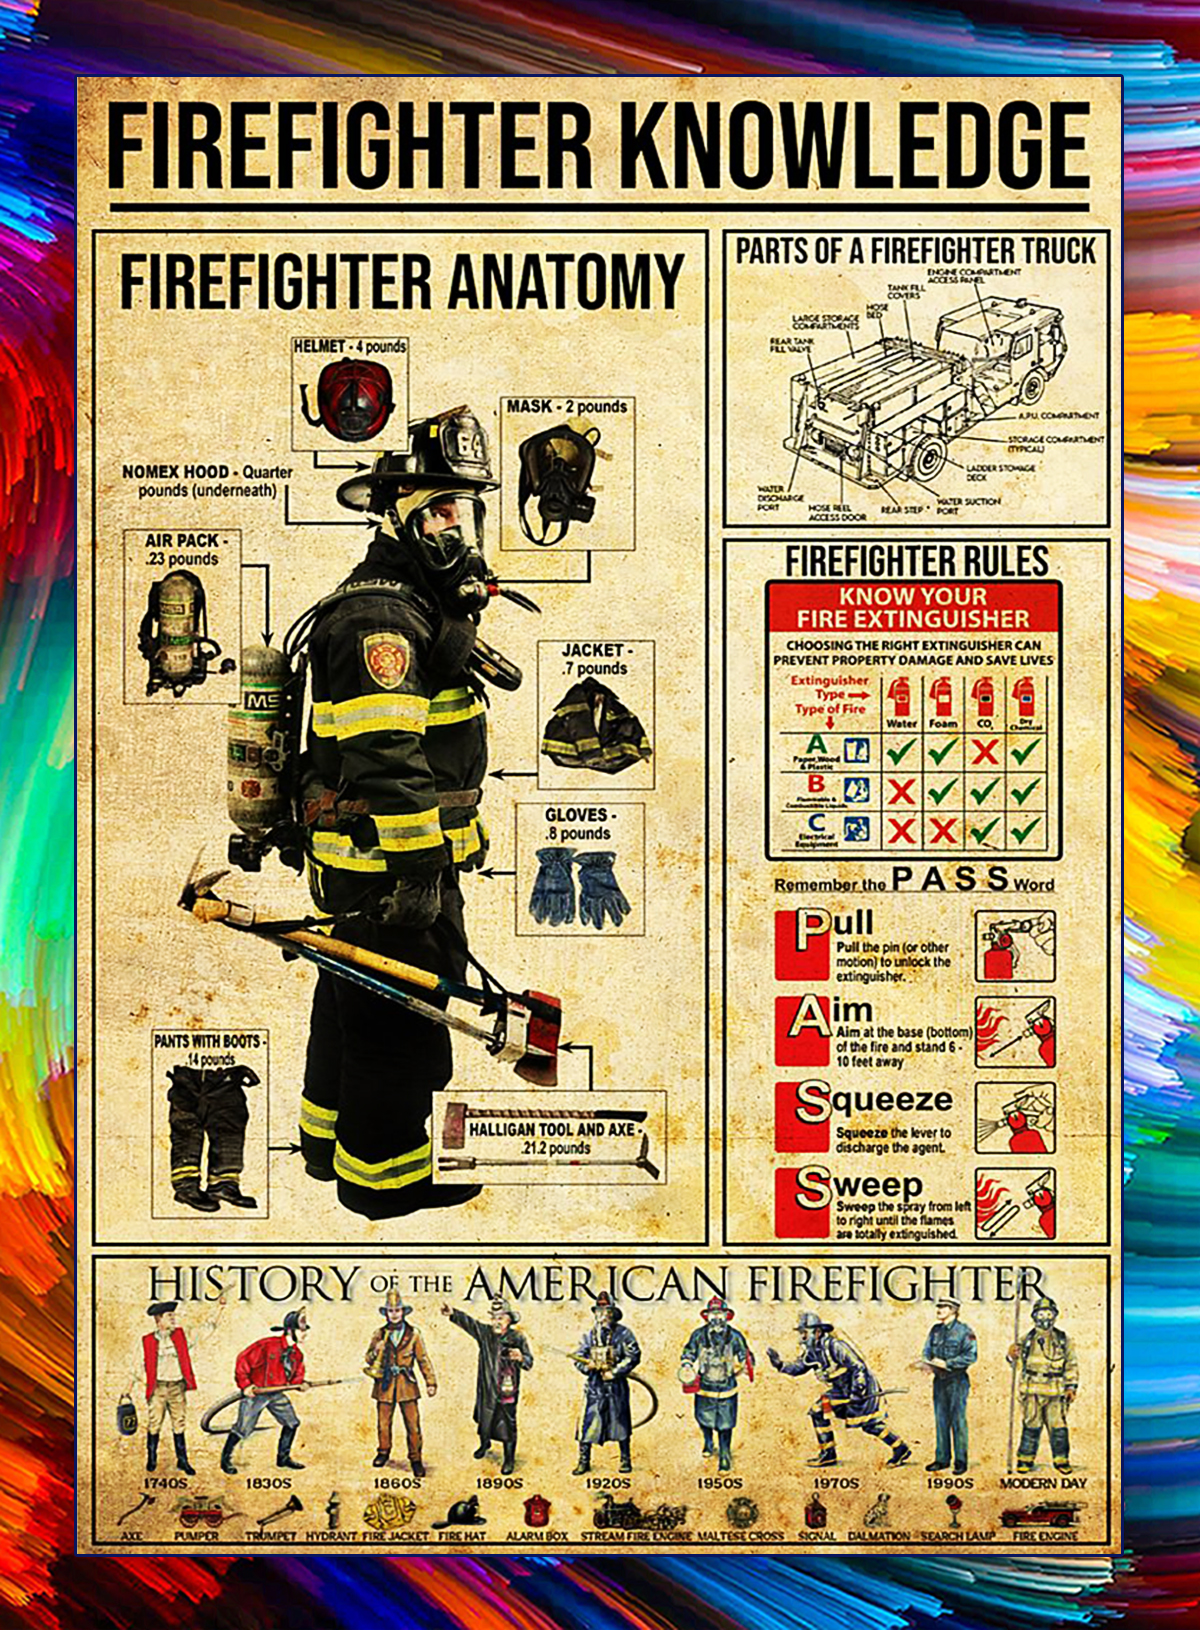 Firefighter knowledge poster - A4